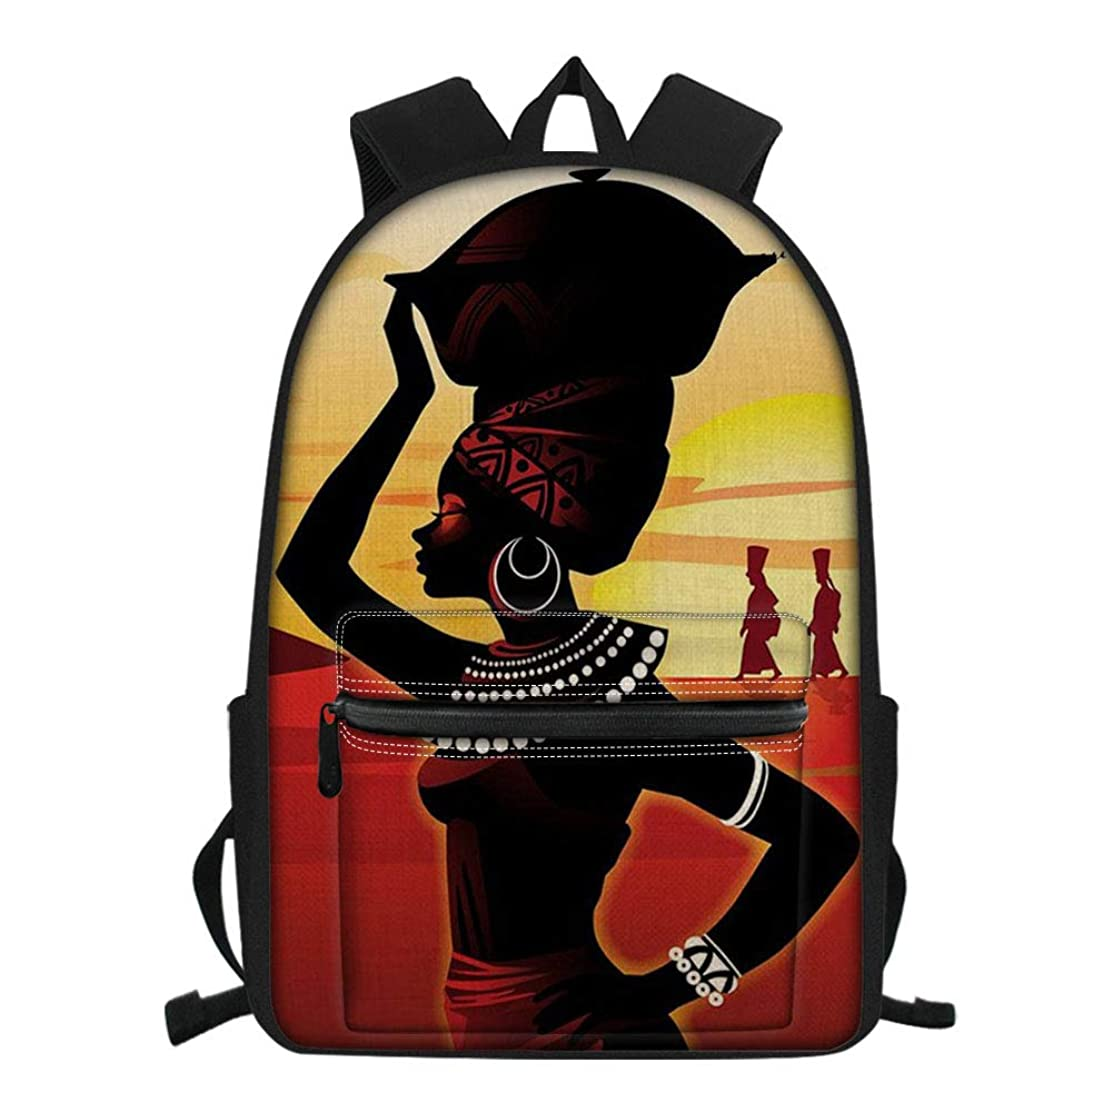 Salabomia Unisex Travel Daypack Egyptian Finger Dance Design Backpack for Teenagers Boys Girls School Bag Bookbag